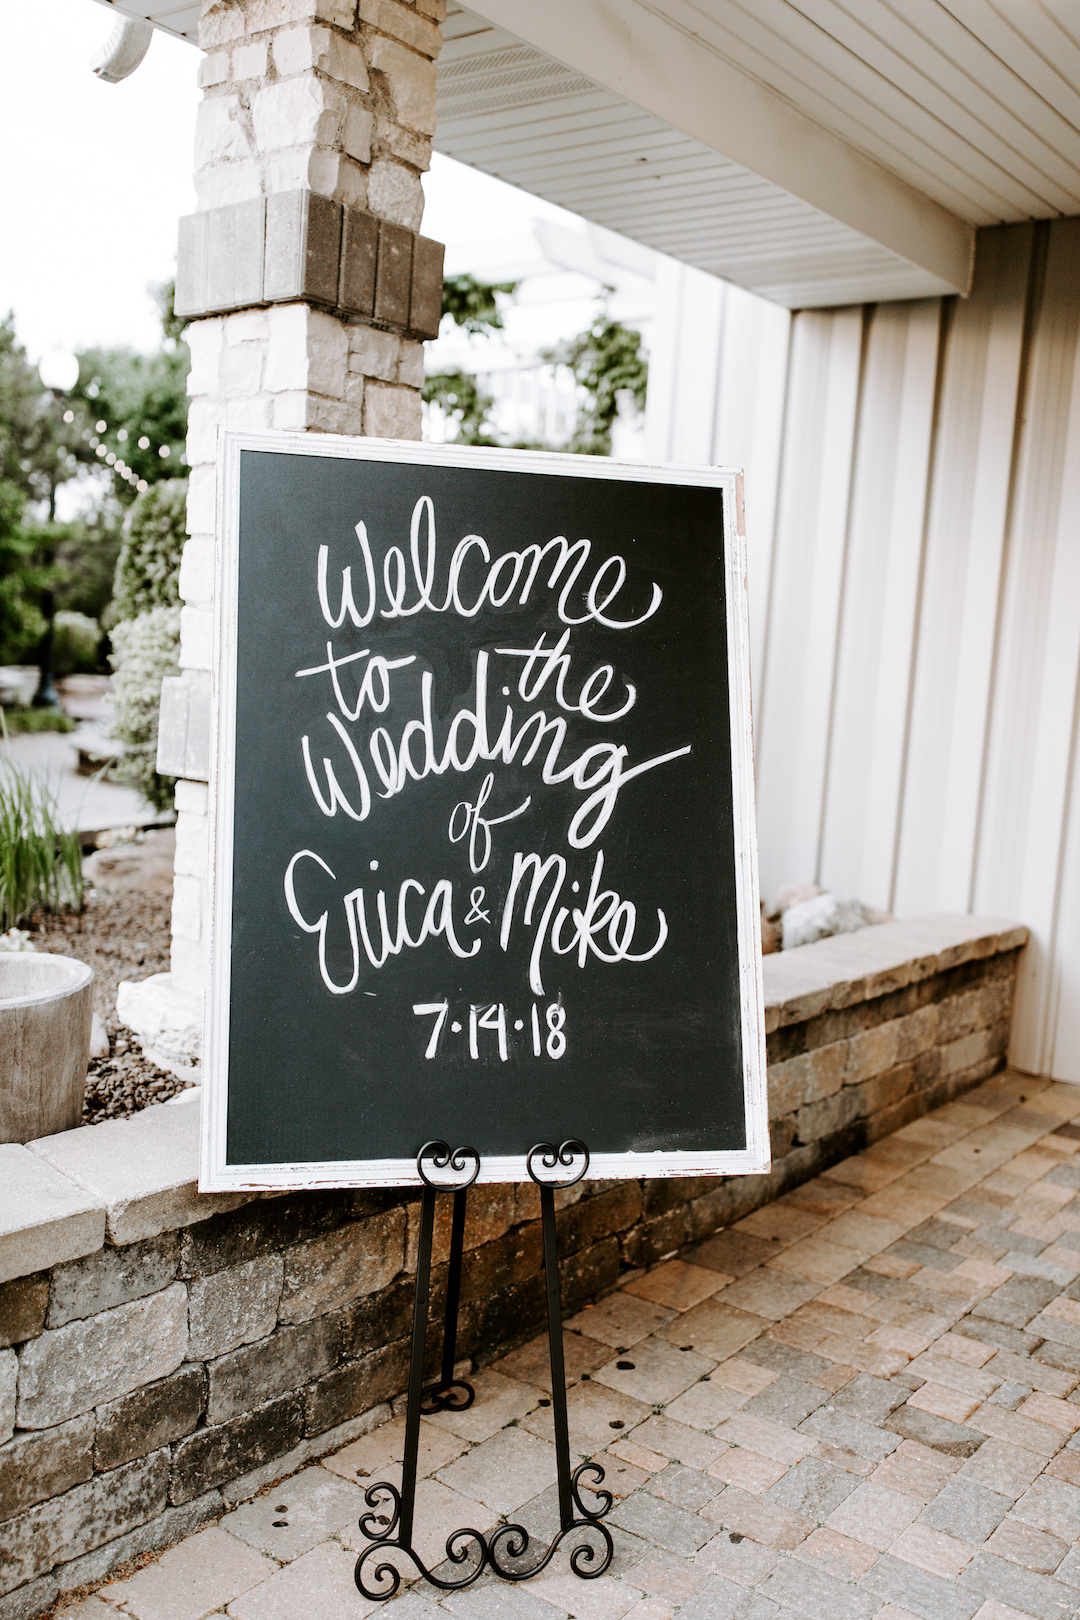 Chalkboard wedding sign: Charming CD&ME outdoor wedding captured by Eiza Photography featured on CHI thee WED. Find more wedding inspiration at chitheewed.com!